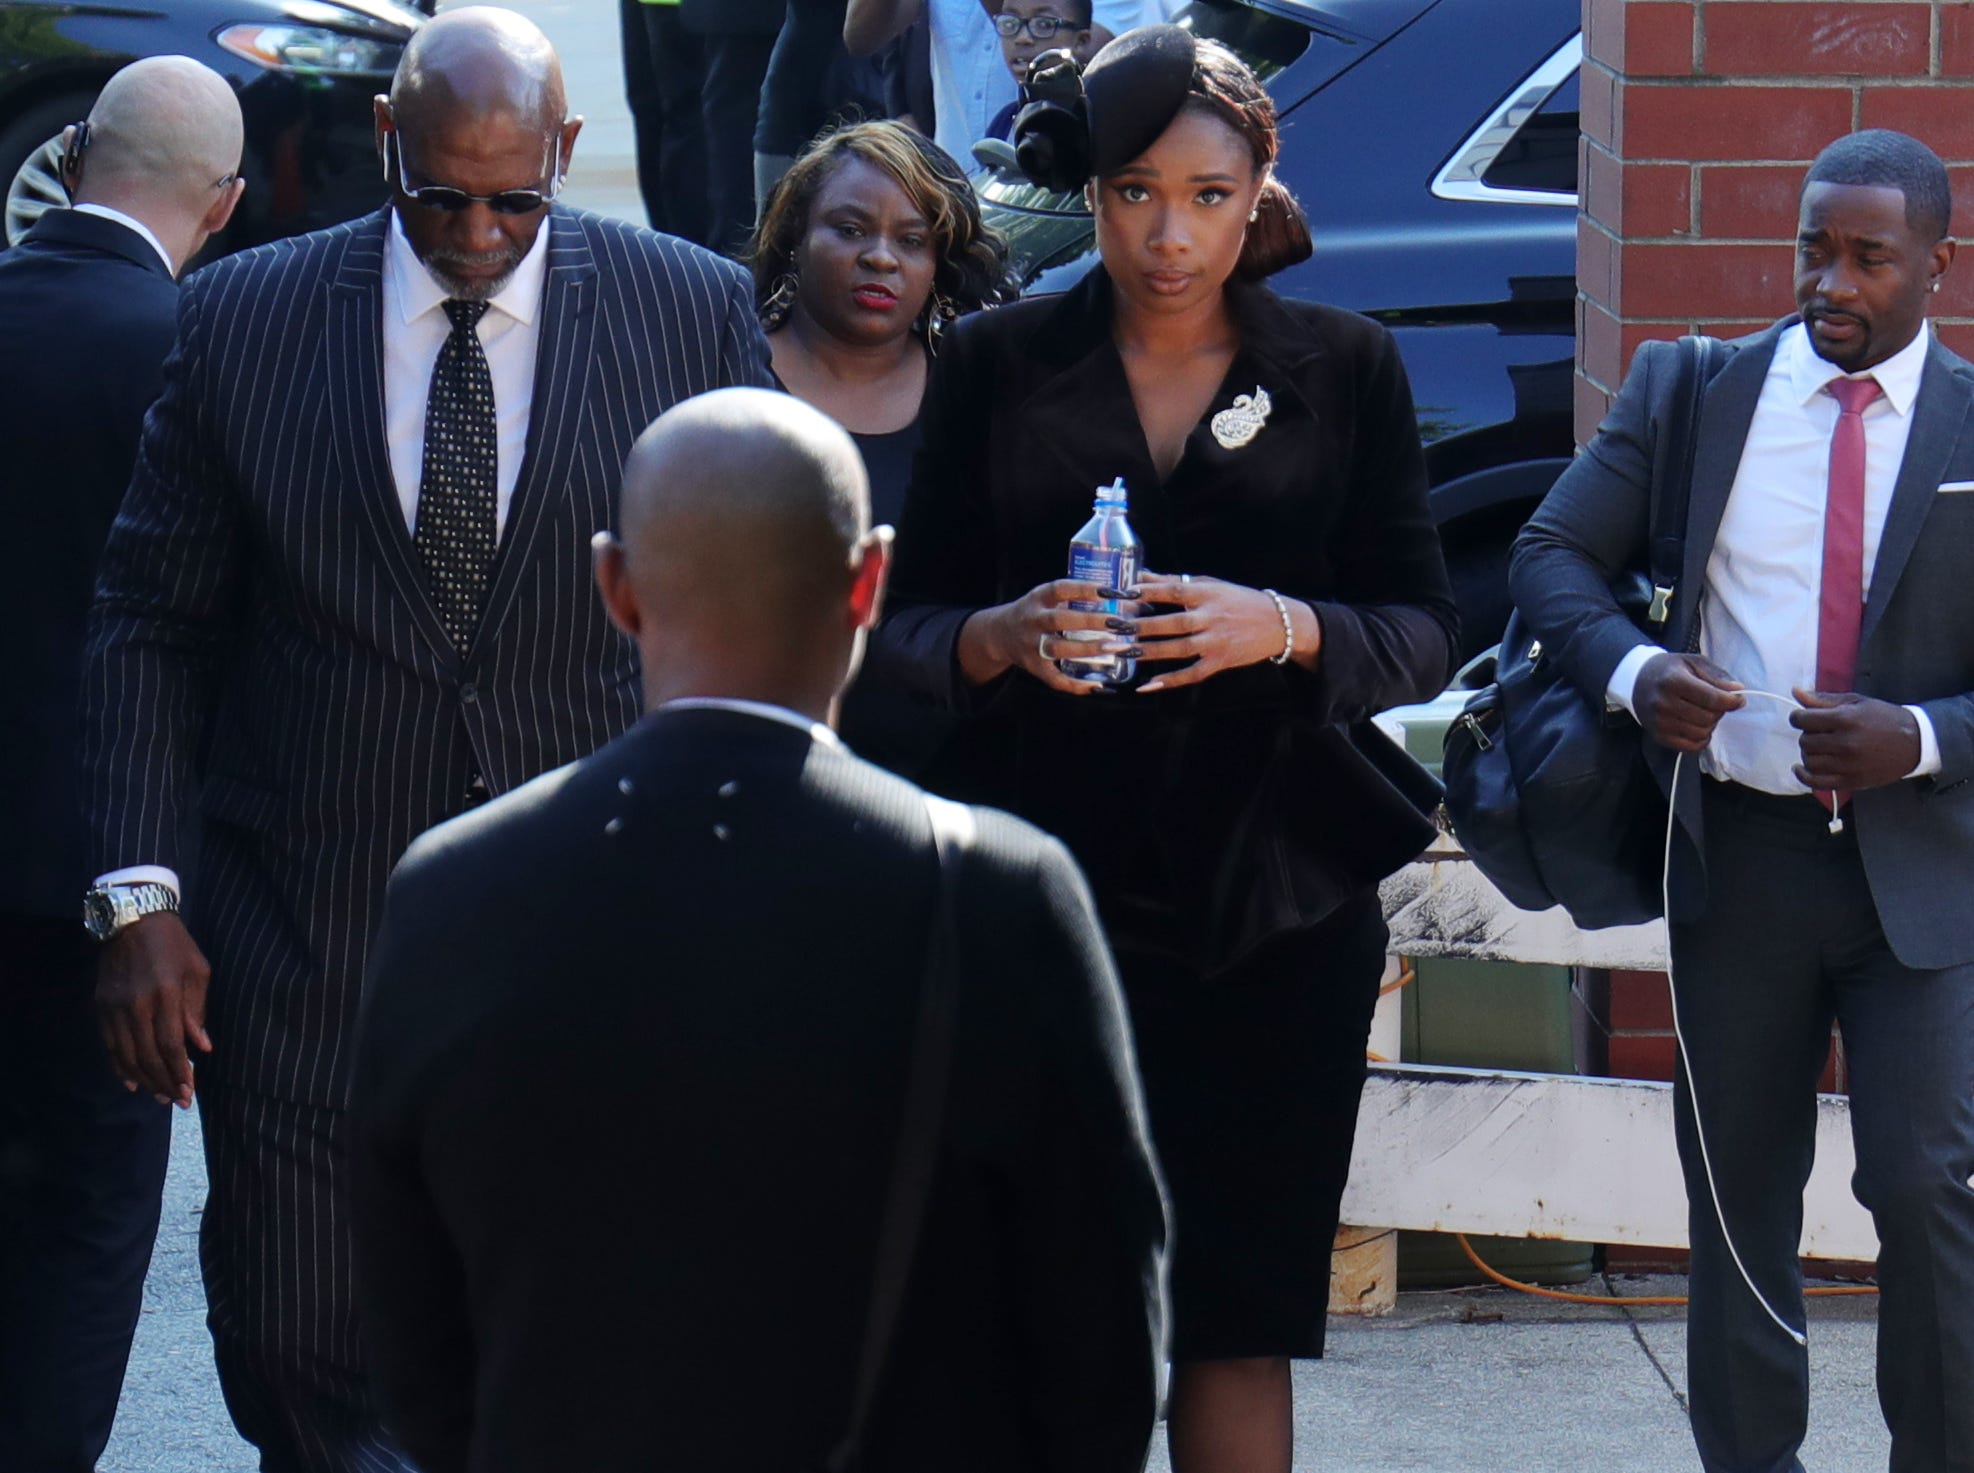 Jennifer Hudson arrives at a back entrance for Aretha Franklin's funeral at Greater Grace Temple in Detroit on Friday, August 31, 2018.